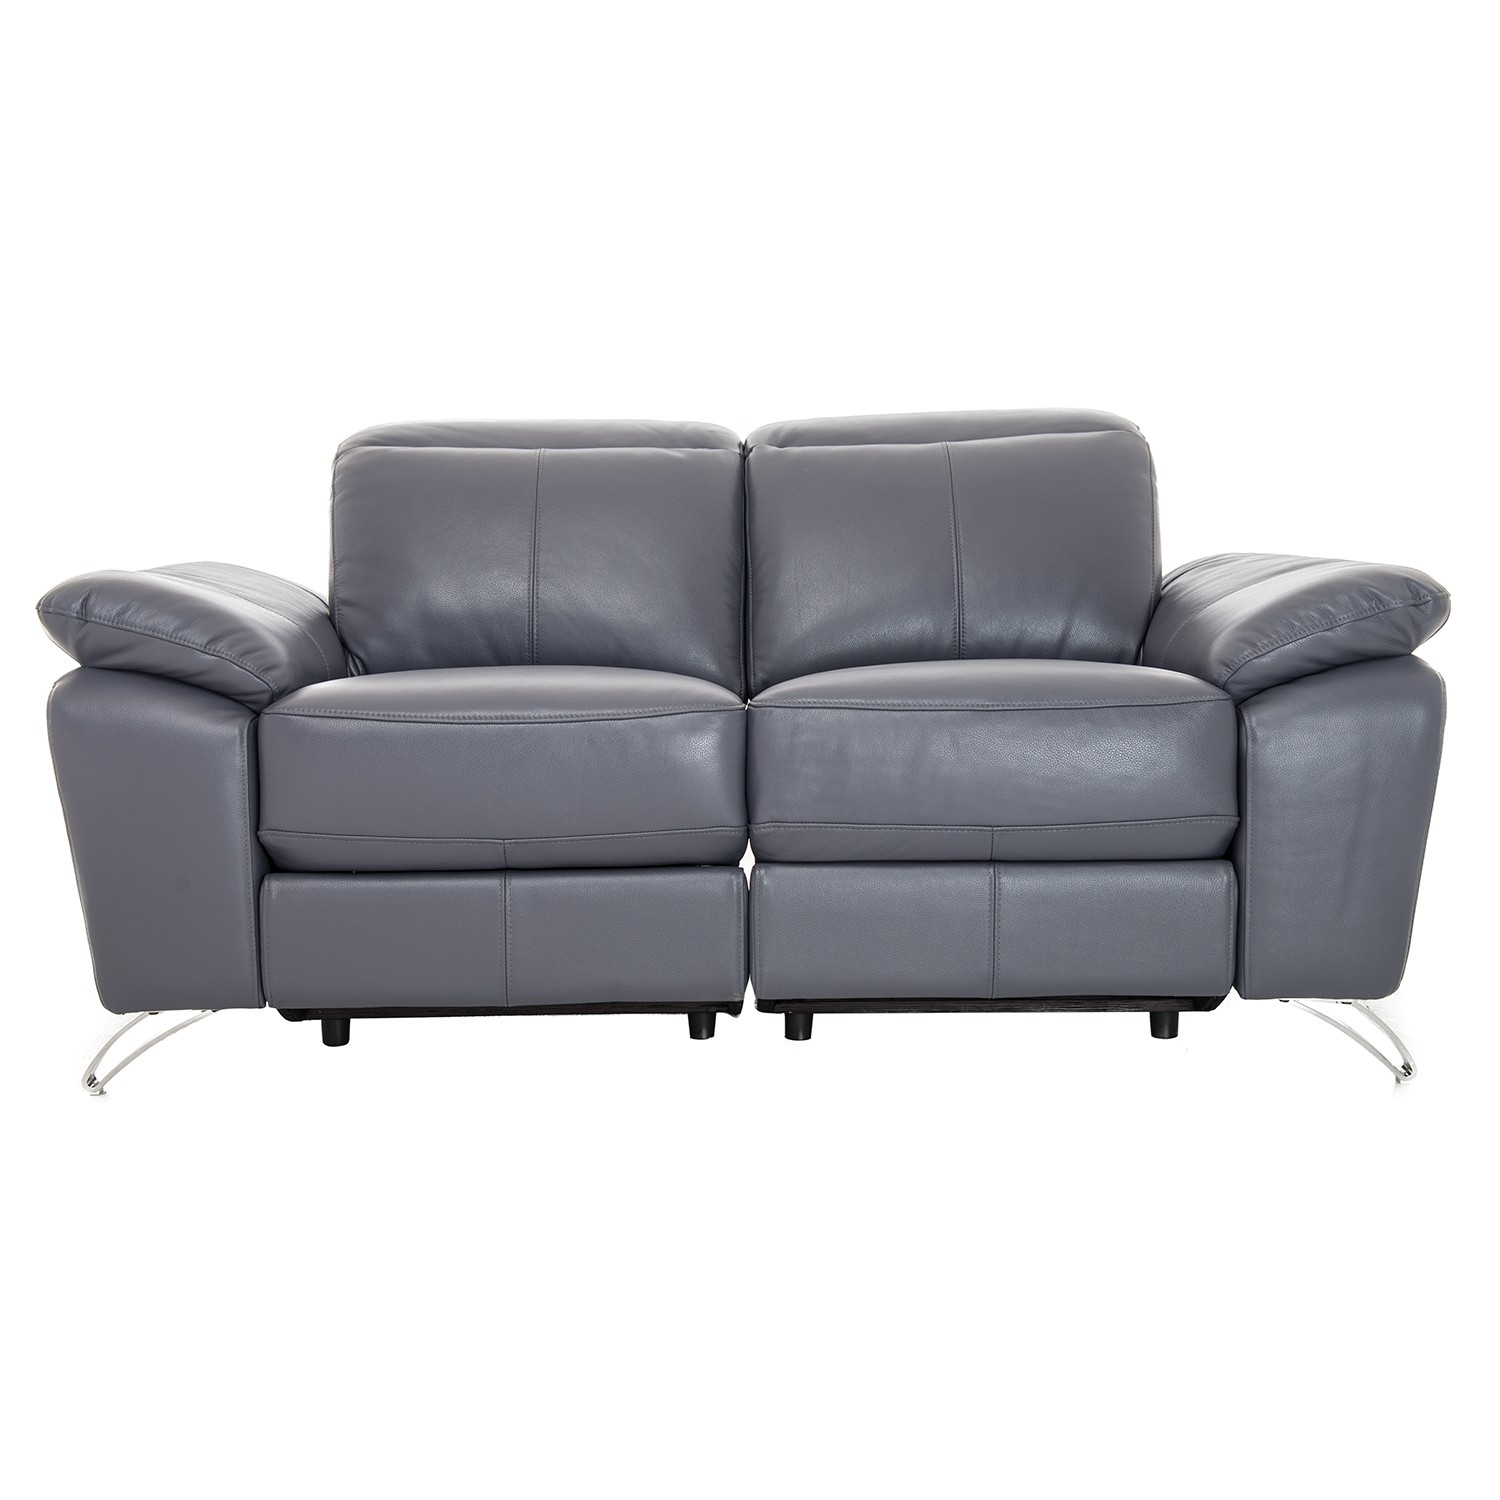 village h seater zoom bounce sofa w lifestyle recliner fabric furniture